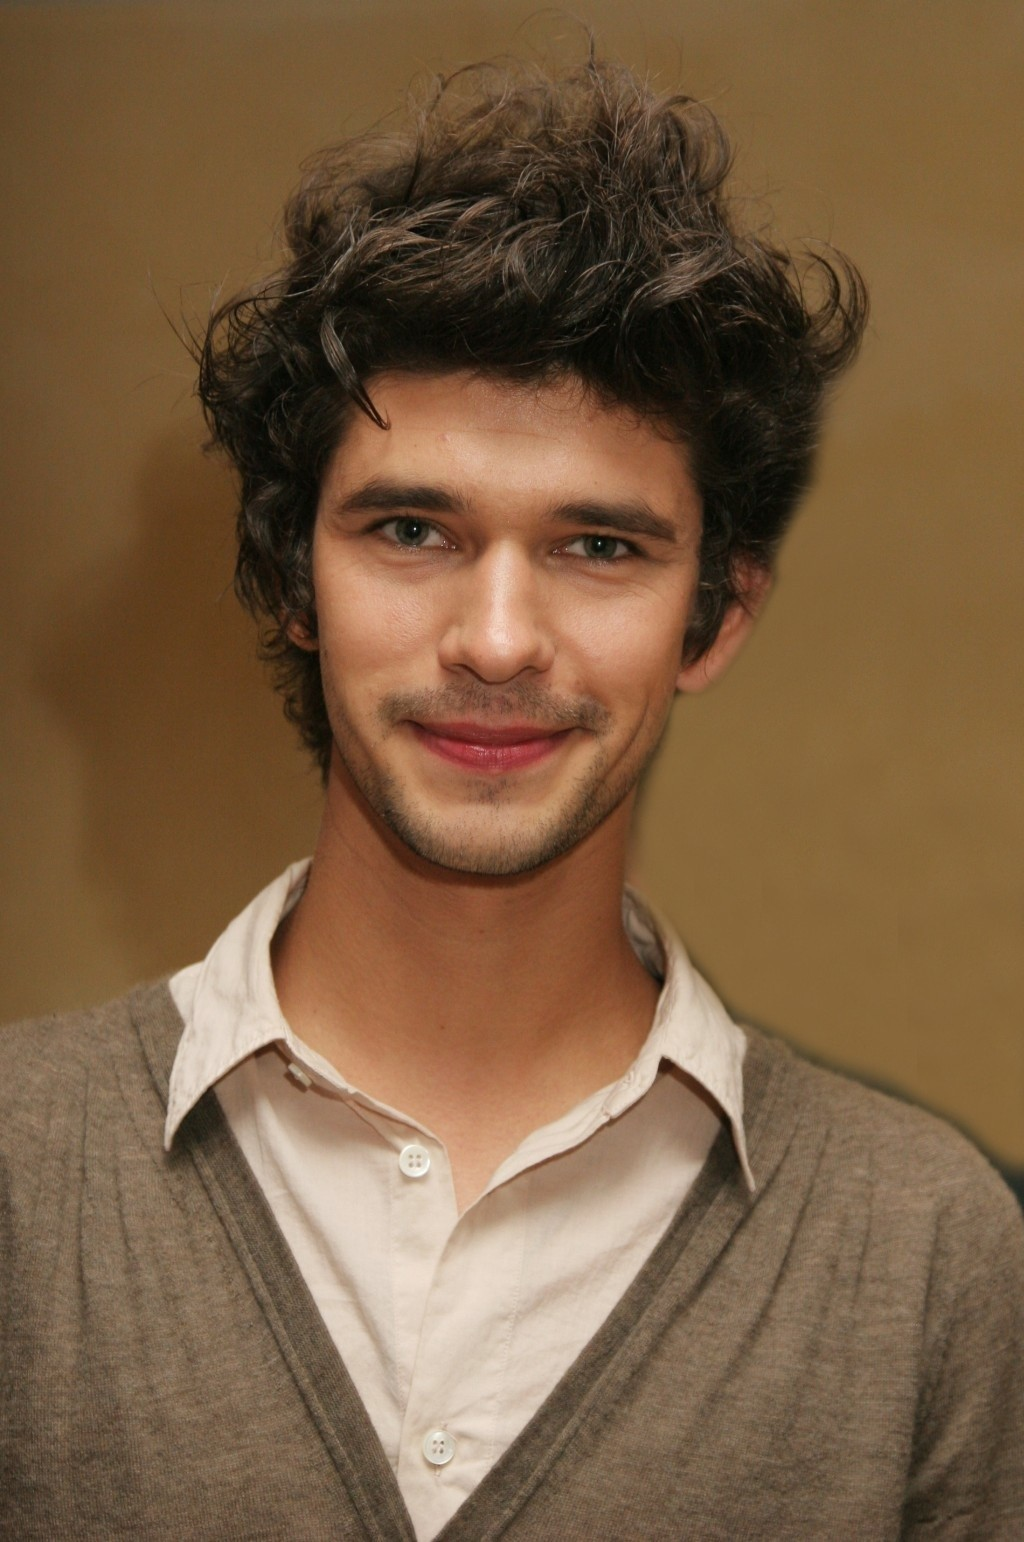 Ben Whishaw Husband 7 - Ben Whishaw